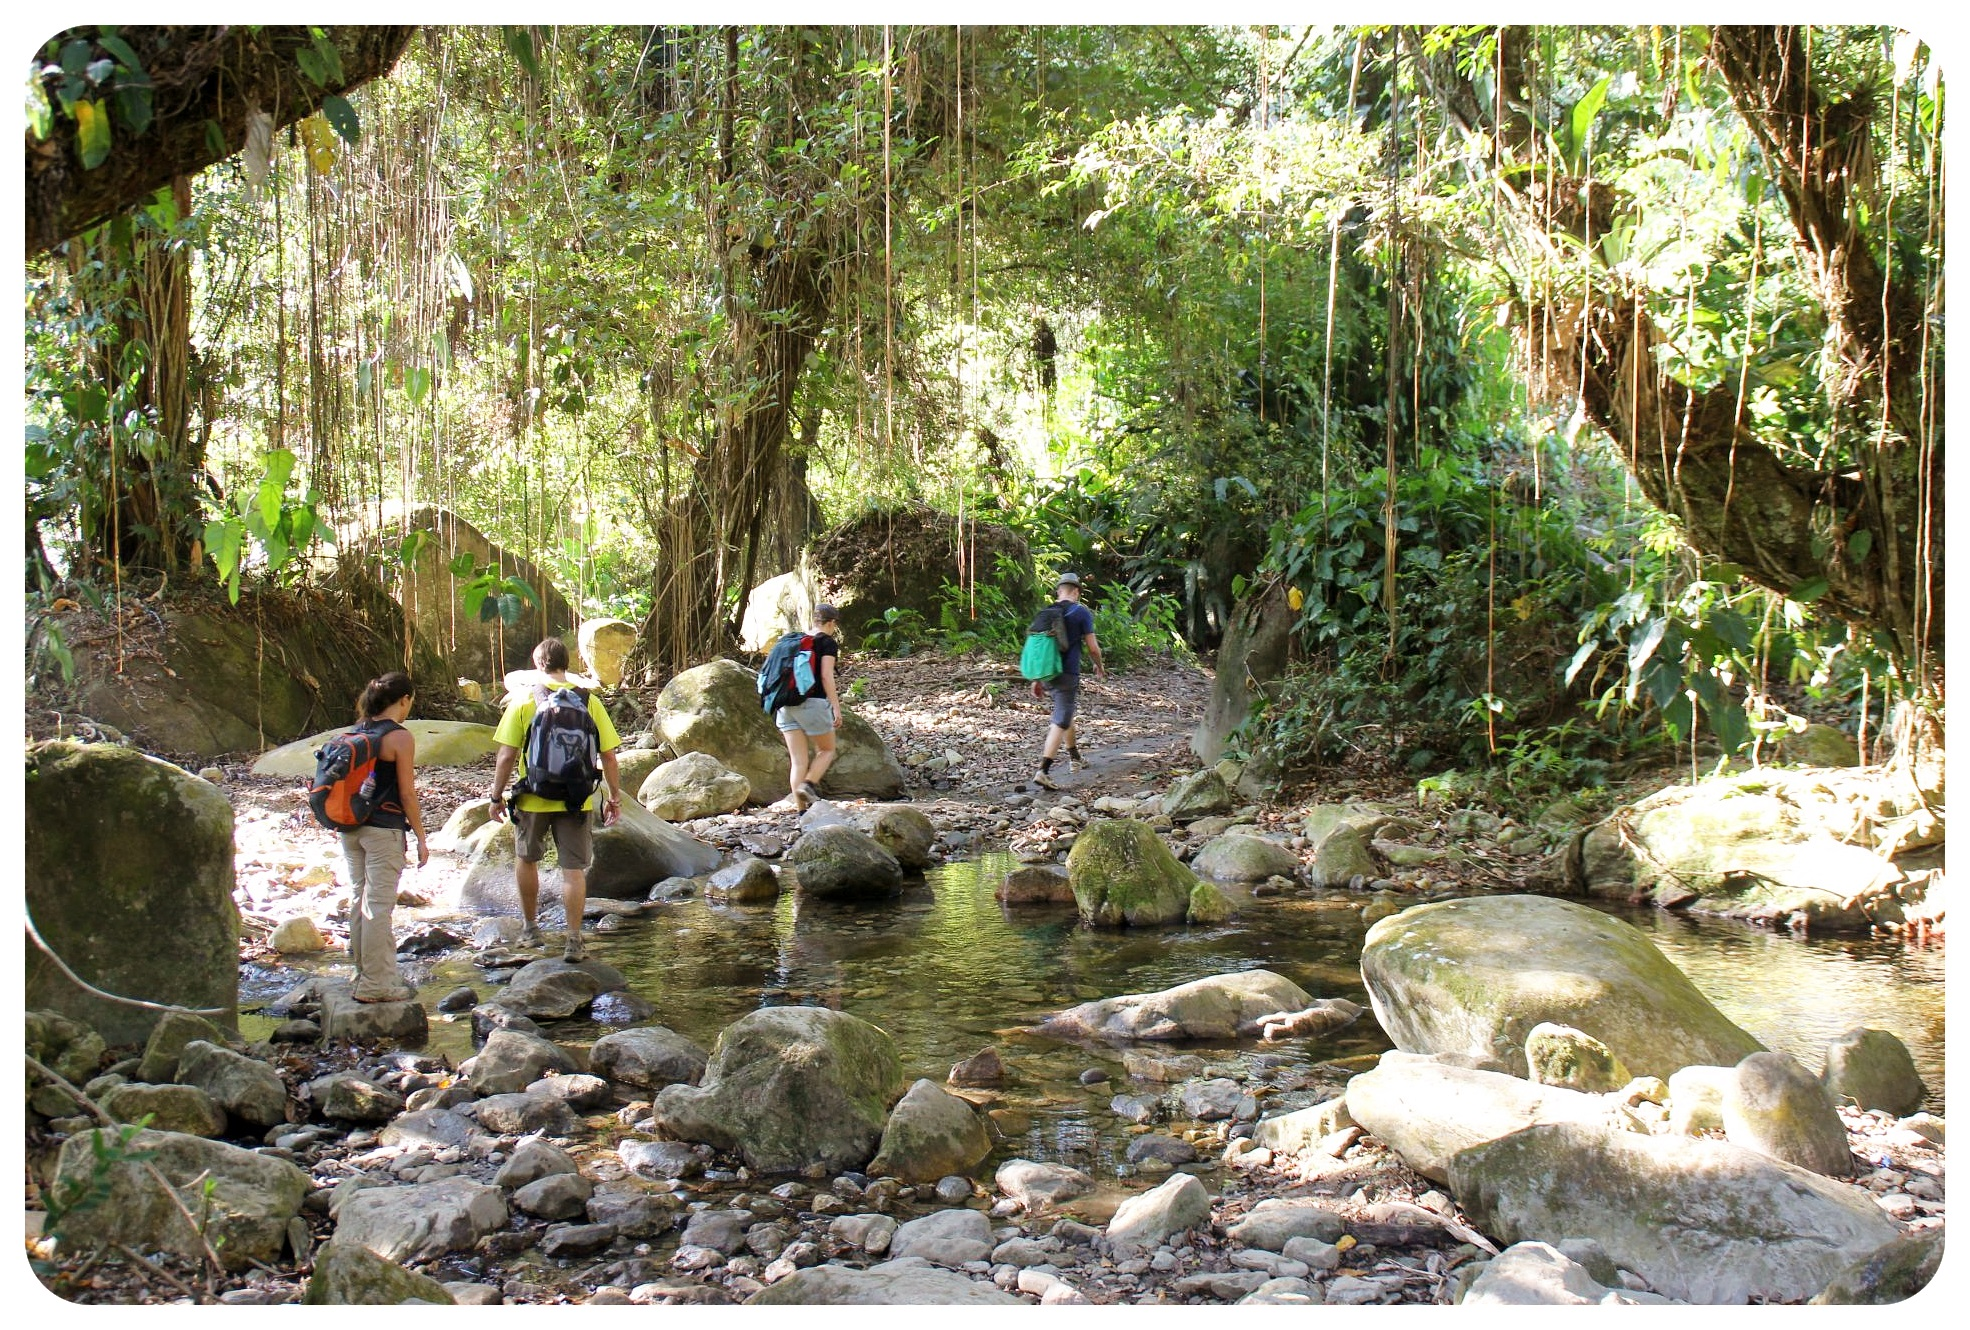 lost city trek river crossing colombia